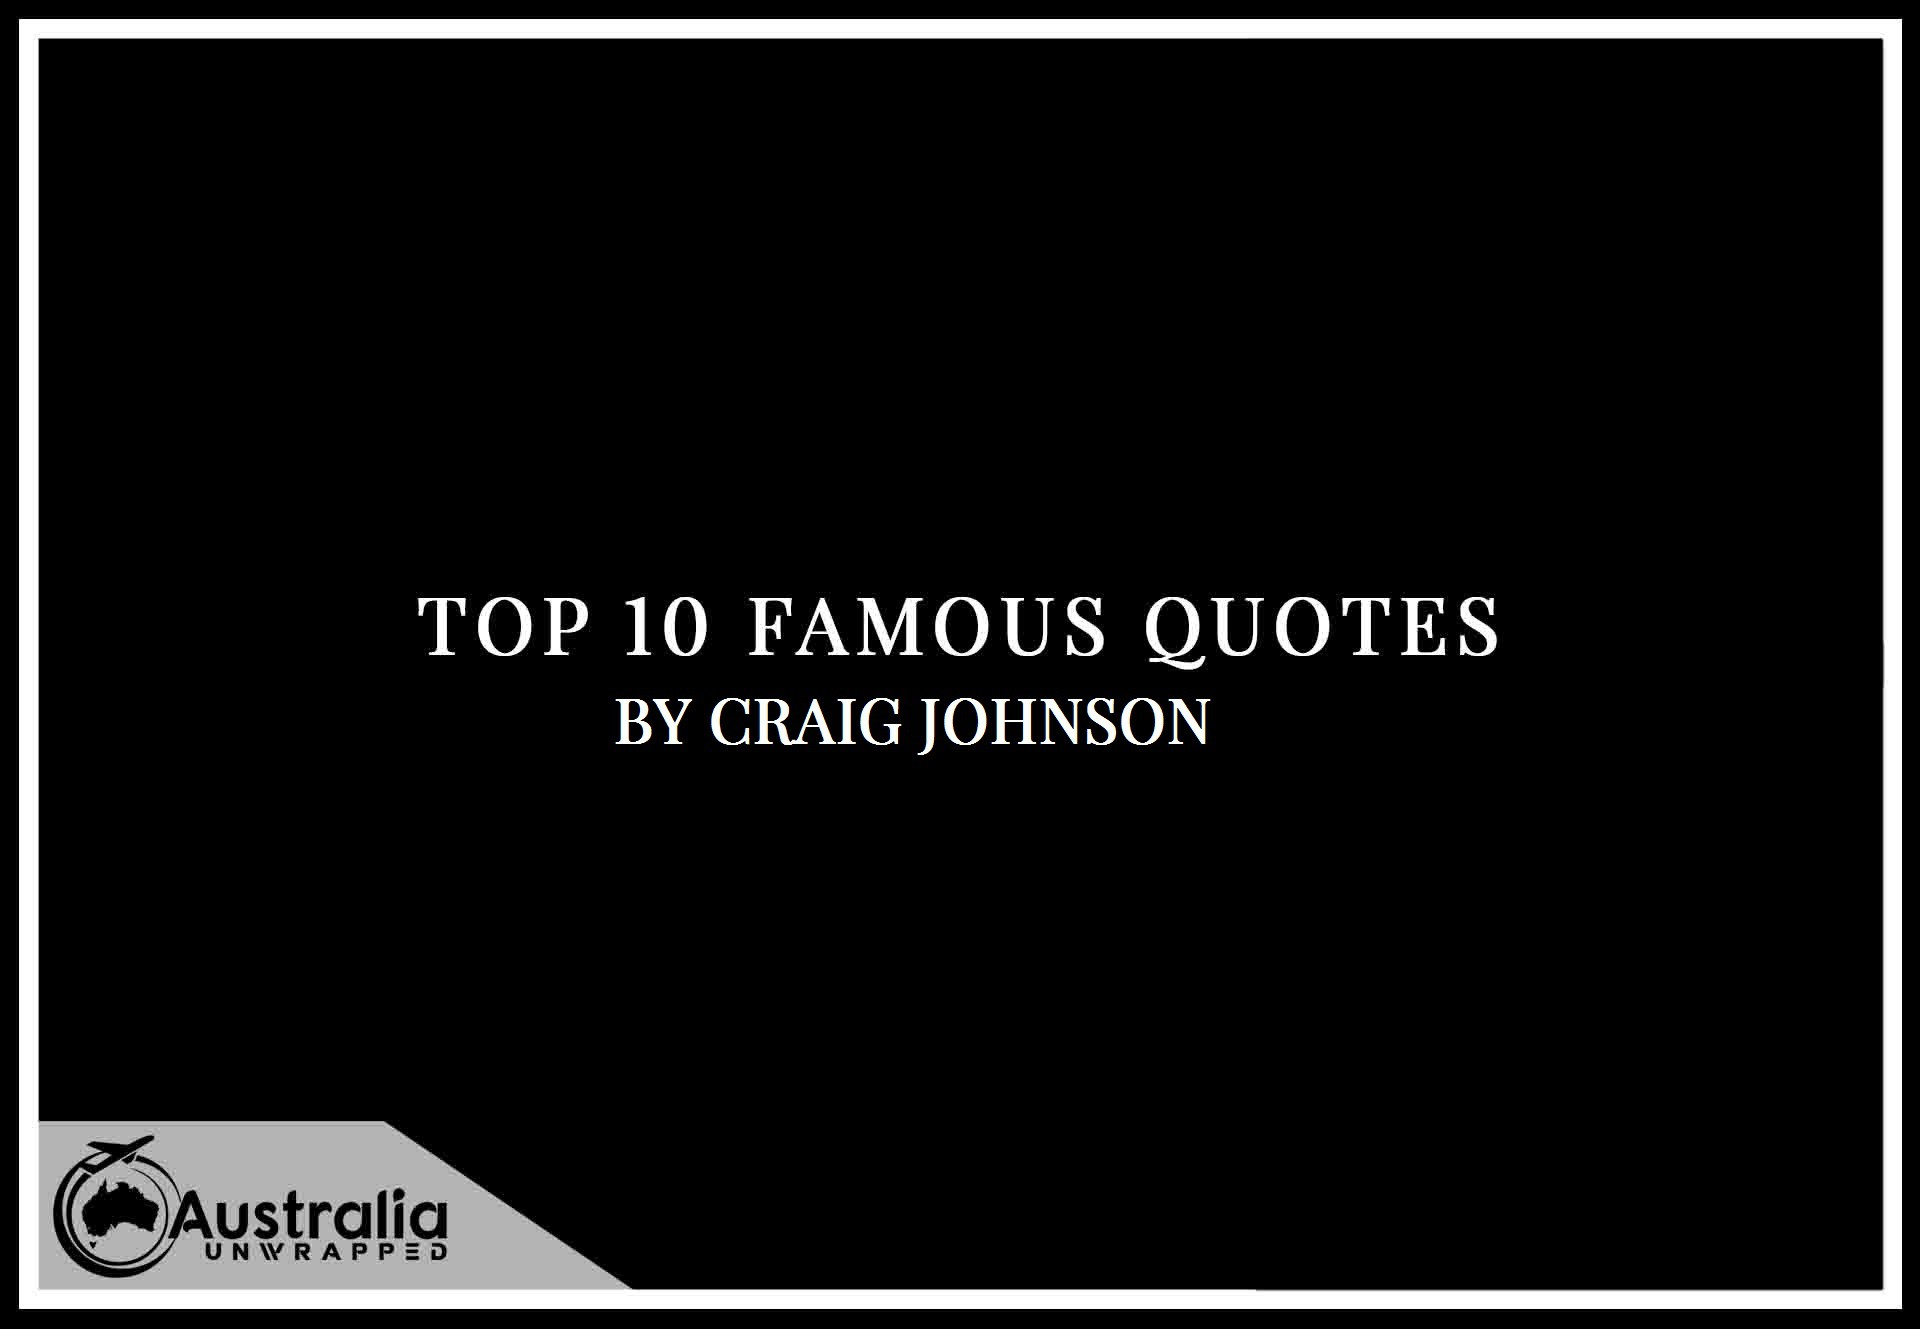 Craig Johnson's Top 10 Popular and Famous Quotes